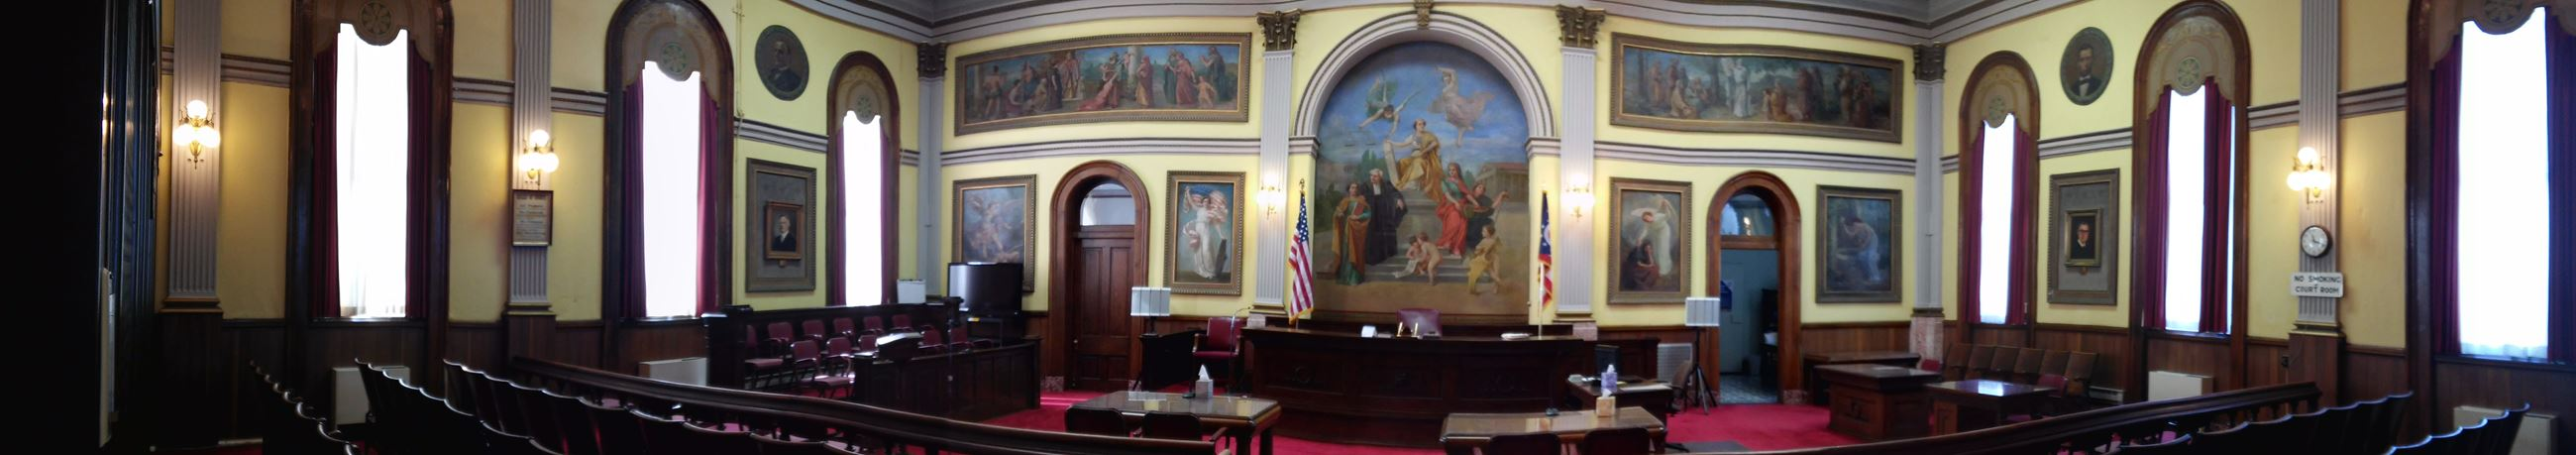 Panoramic View of Court room